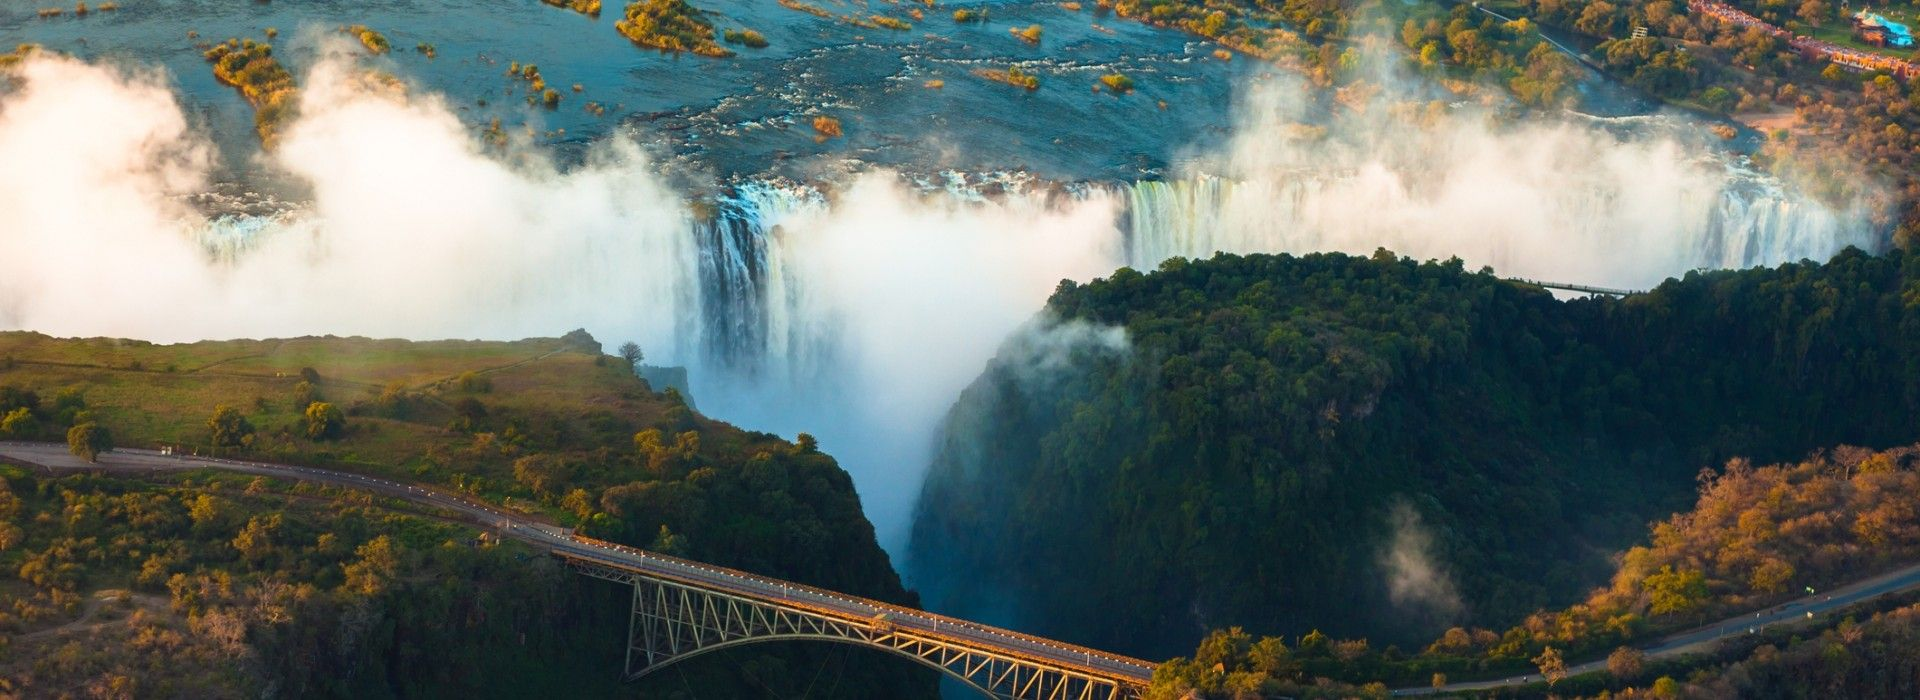 Active and outdoor Tours in Zambia